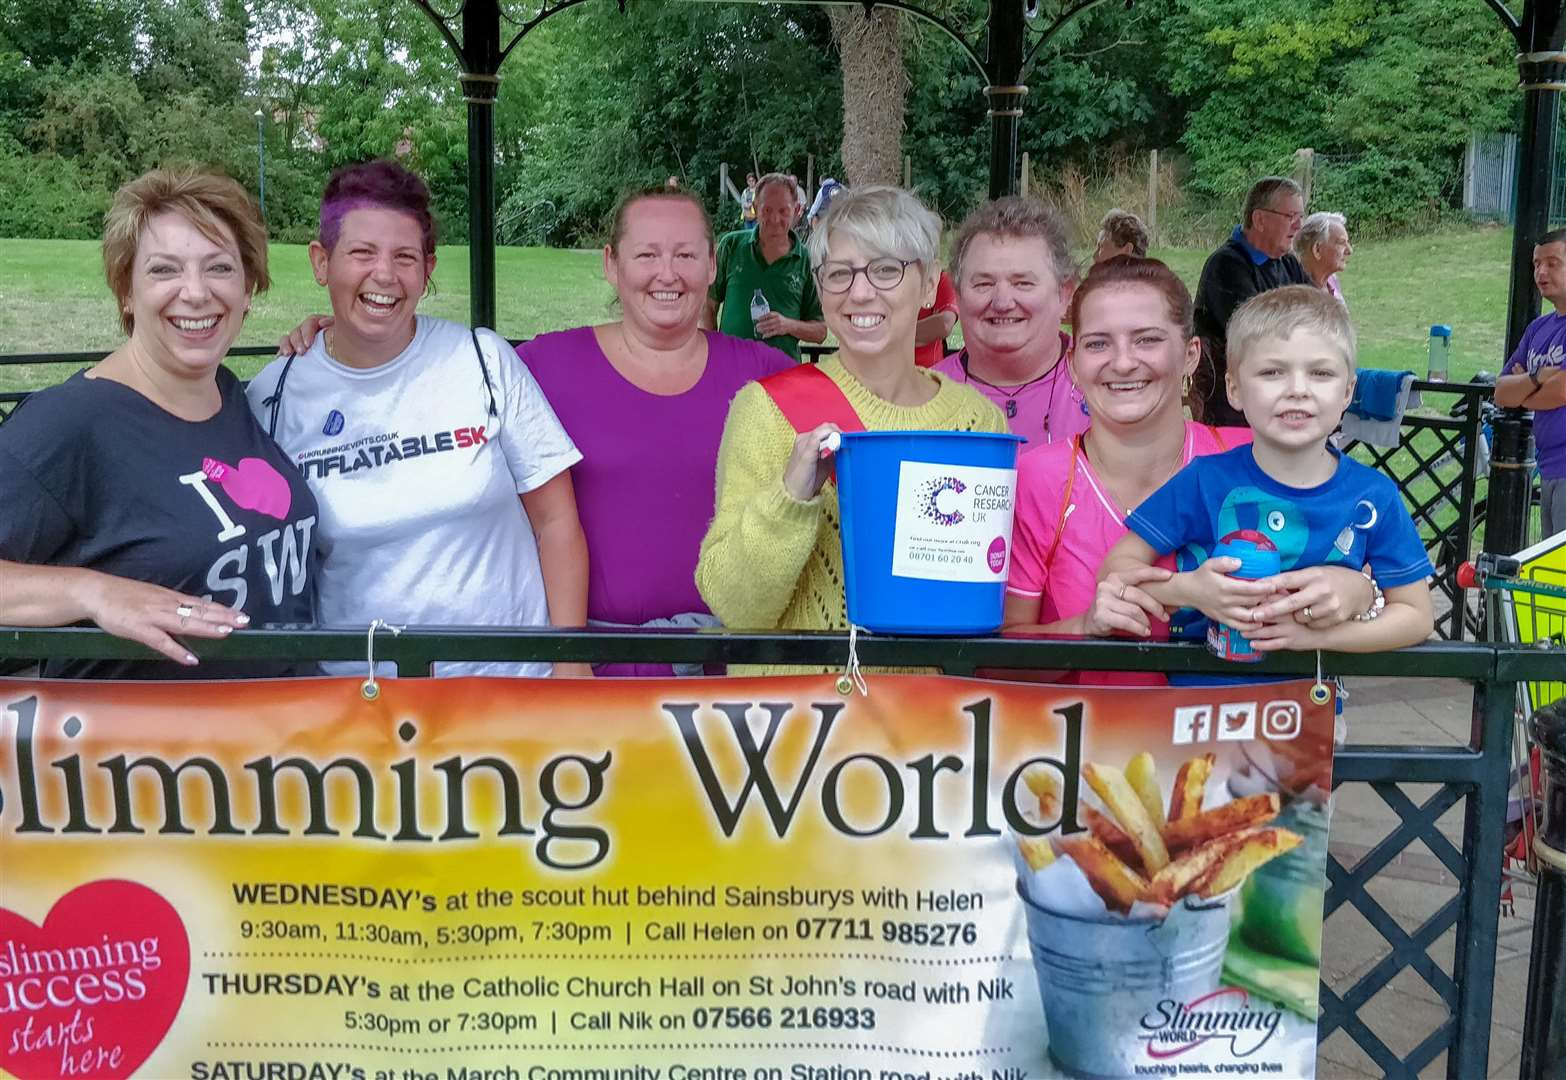 Members of March Slimming World groups complete park run to raise money for Cancer Research UK